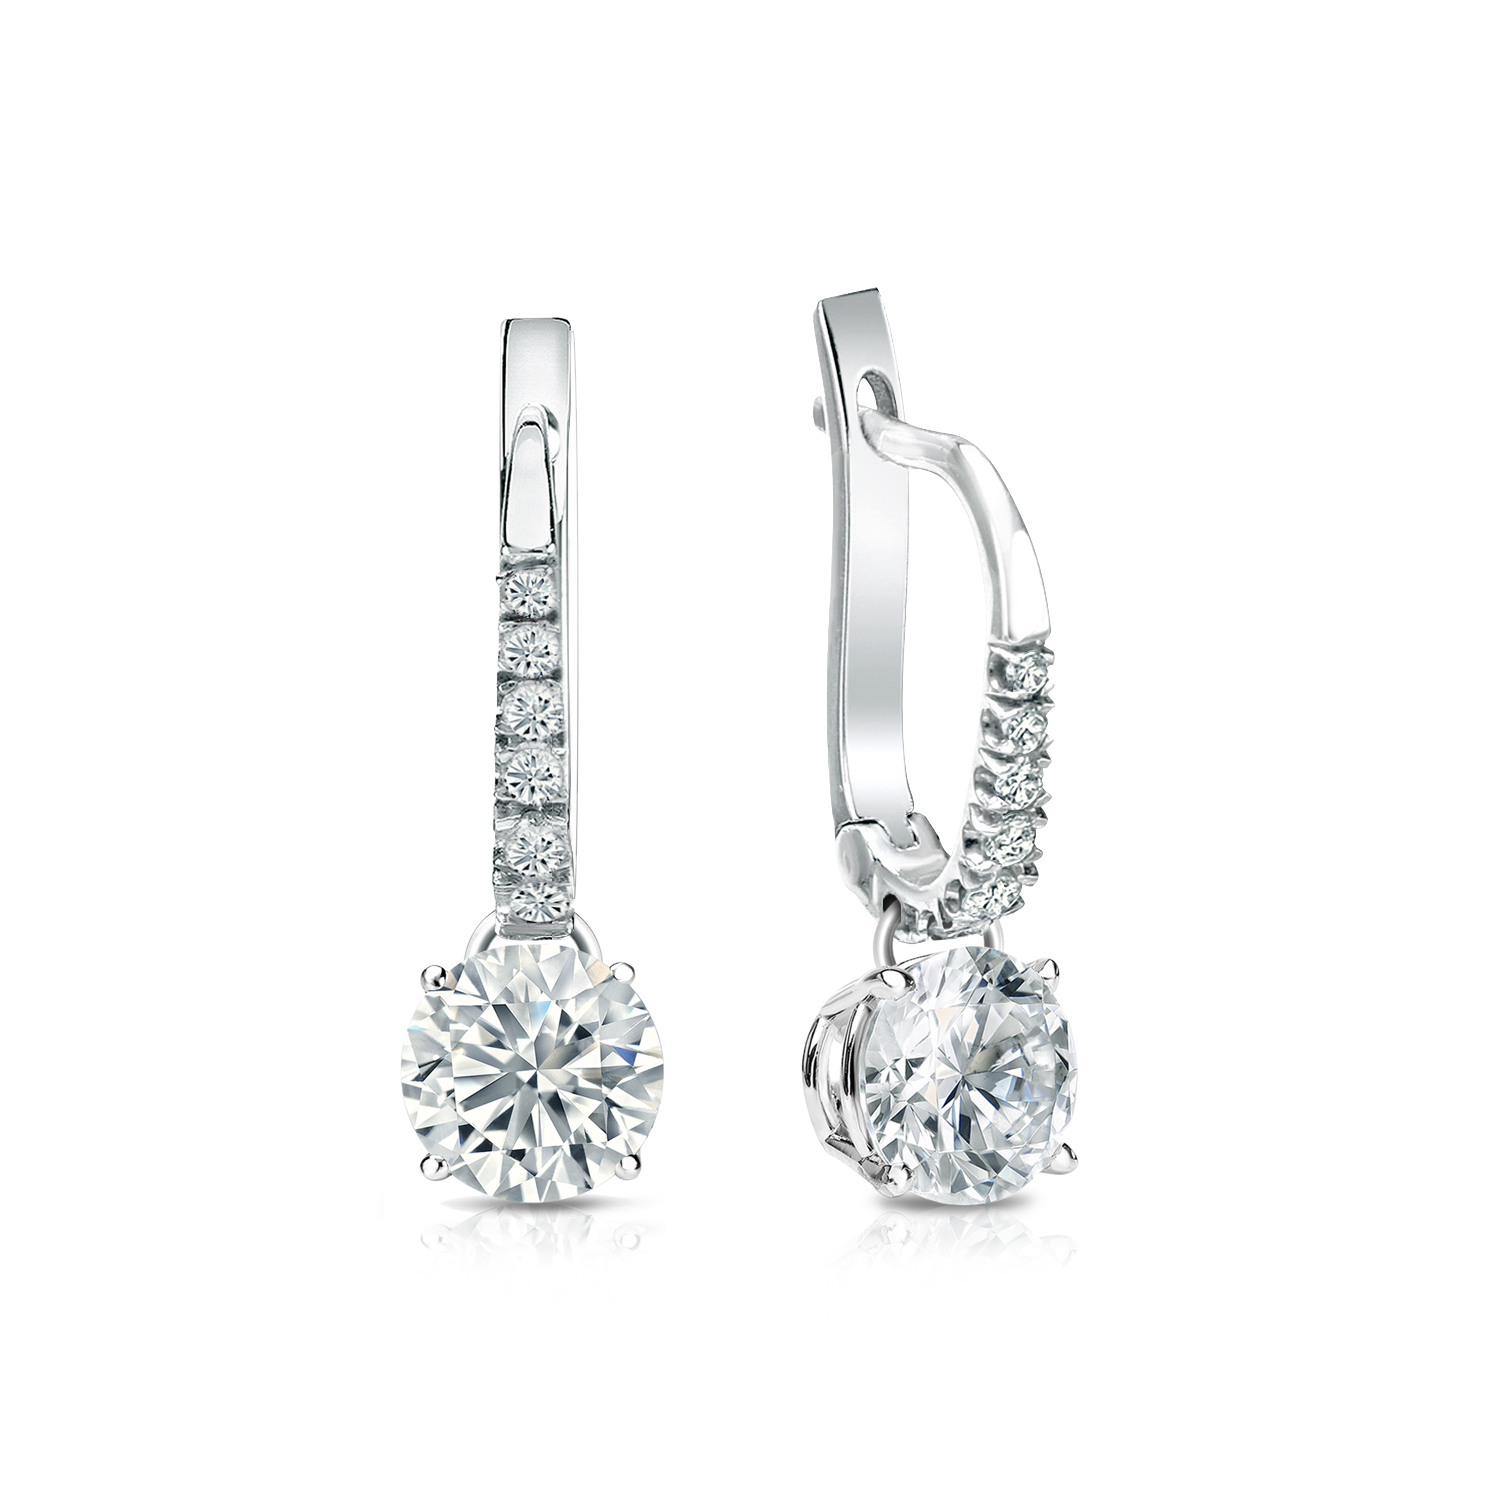 Dangle 4-Prong Basket Diamond Earrings in 14k White Gold